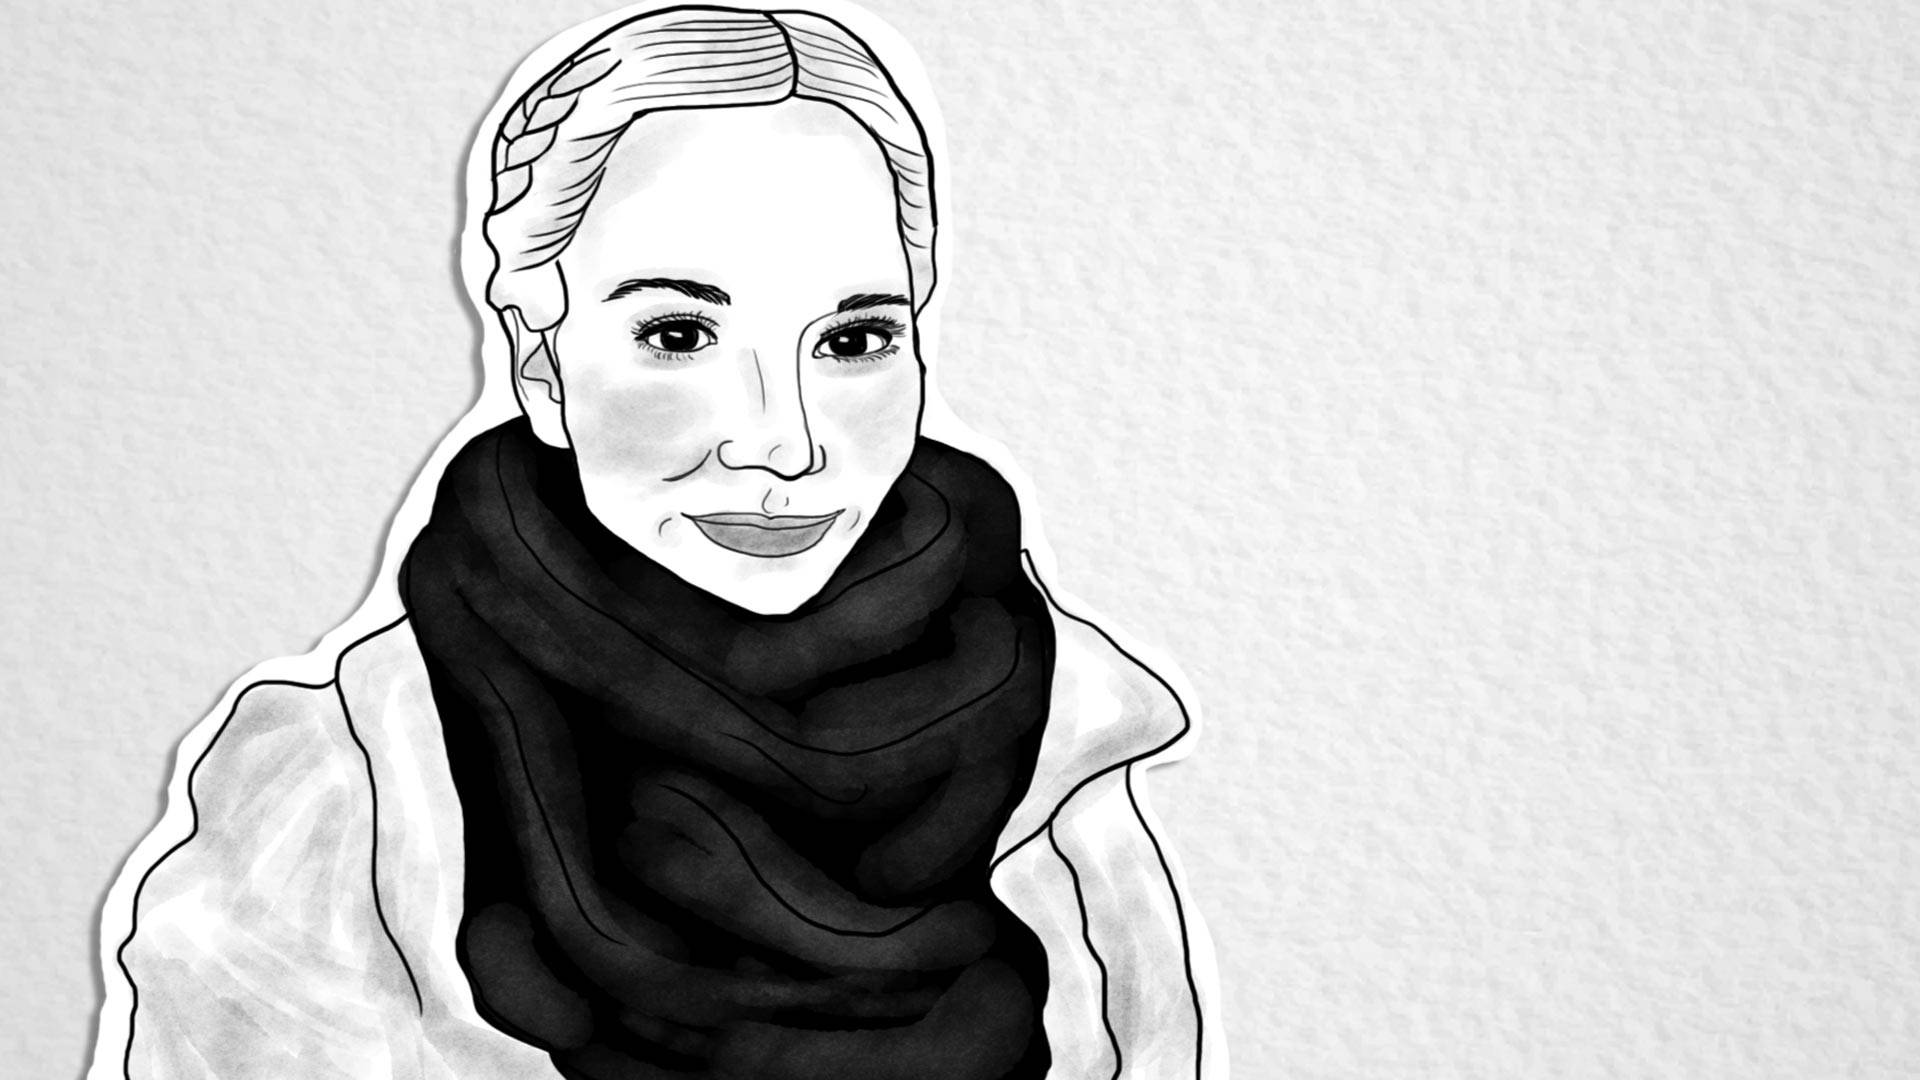 Hanna Ruax. Illustration by Julianna Cecere/KQED